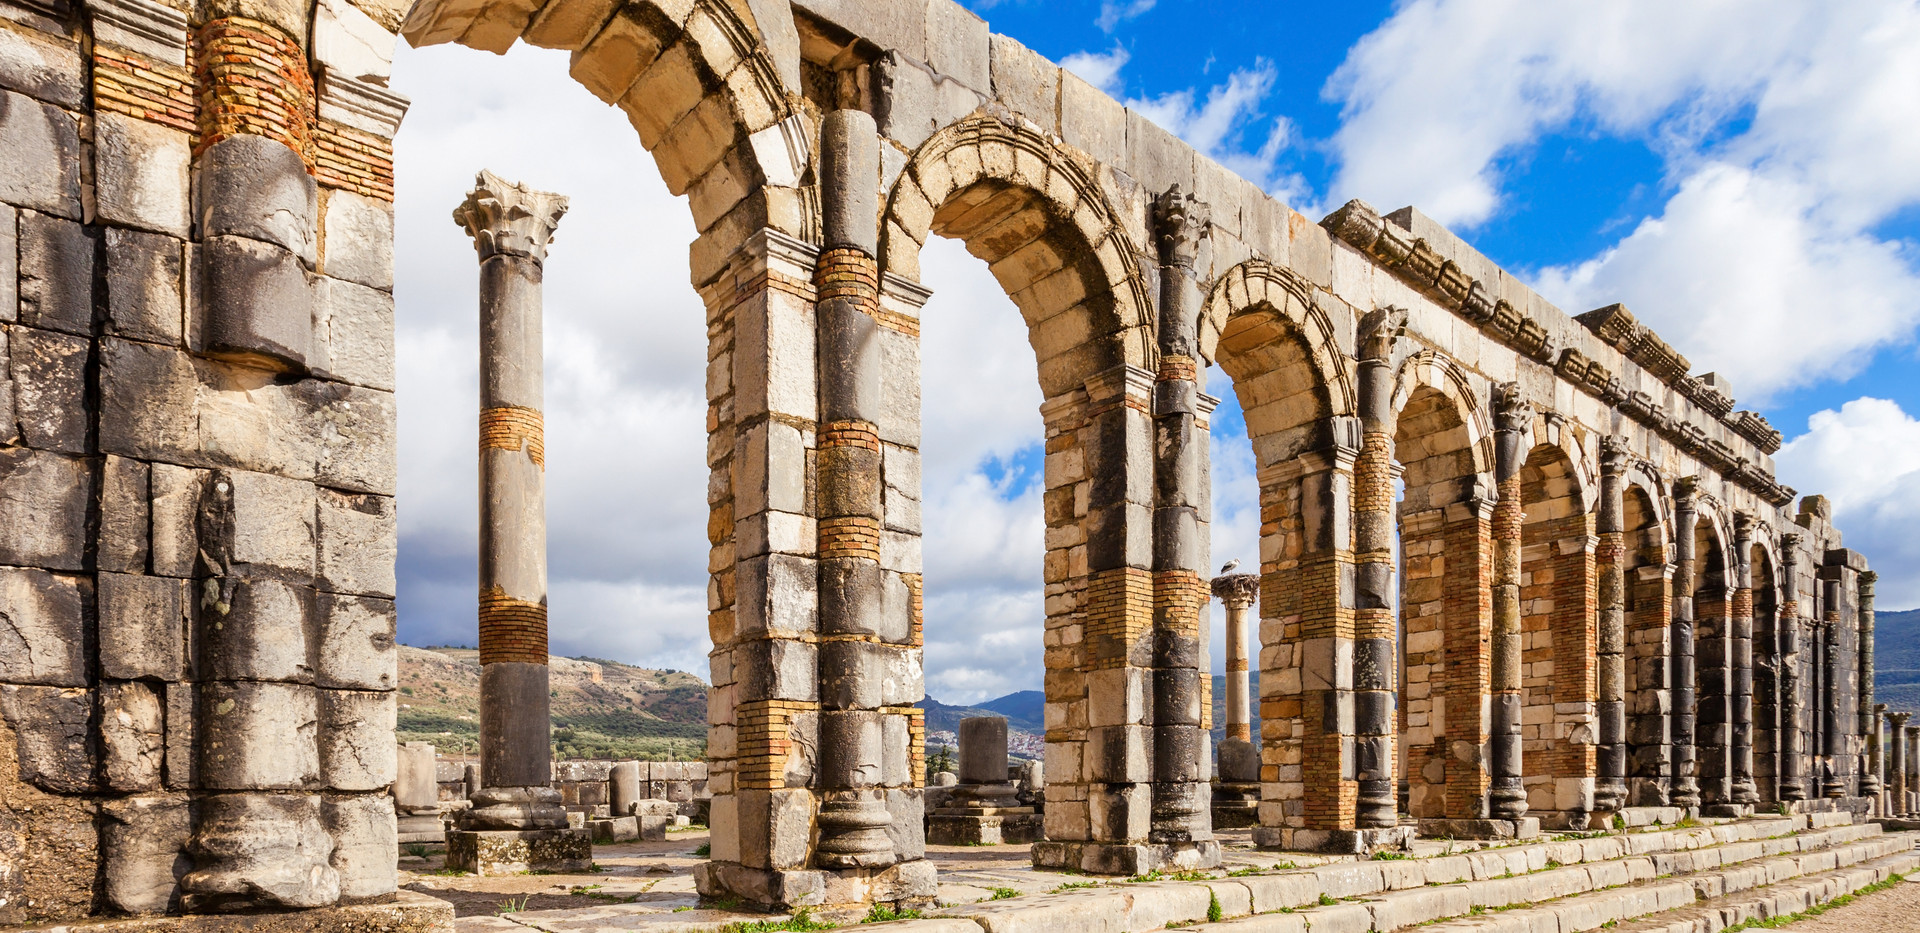 Volubilis near Meknes in Morocco. Volubi